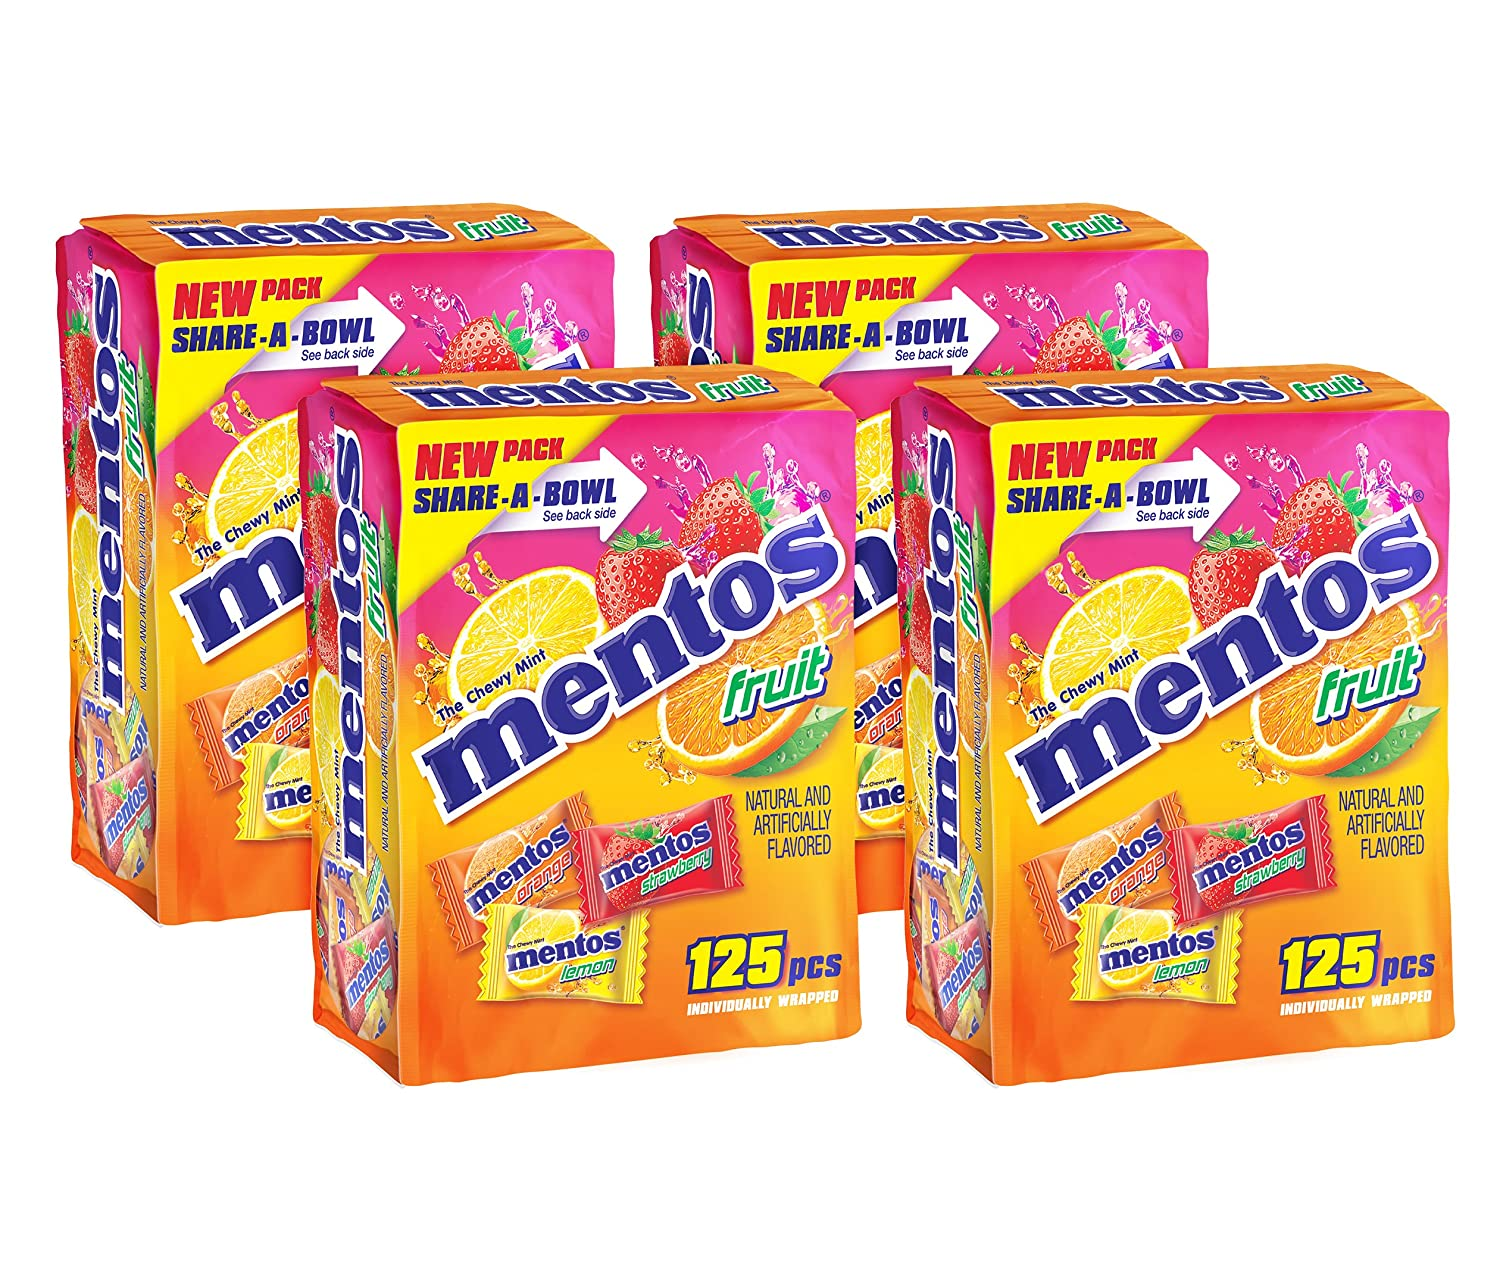 Mentos Chewy Mints in Assorted Fresh Fruit Flavor - Strawberry / Orange / Lemon - Non Melting, 125 Individually Wrapped Pieces, 125 Count (Pack of 4)